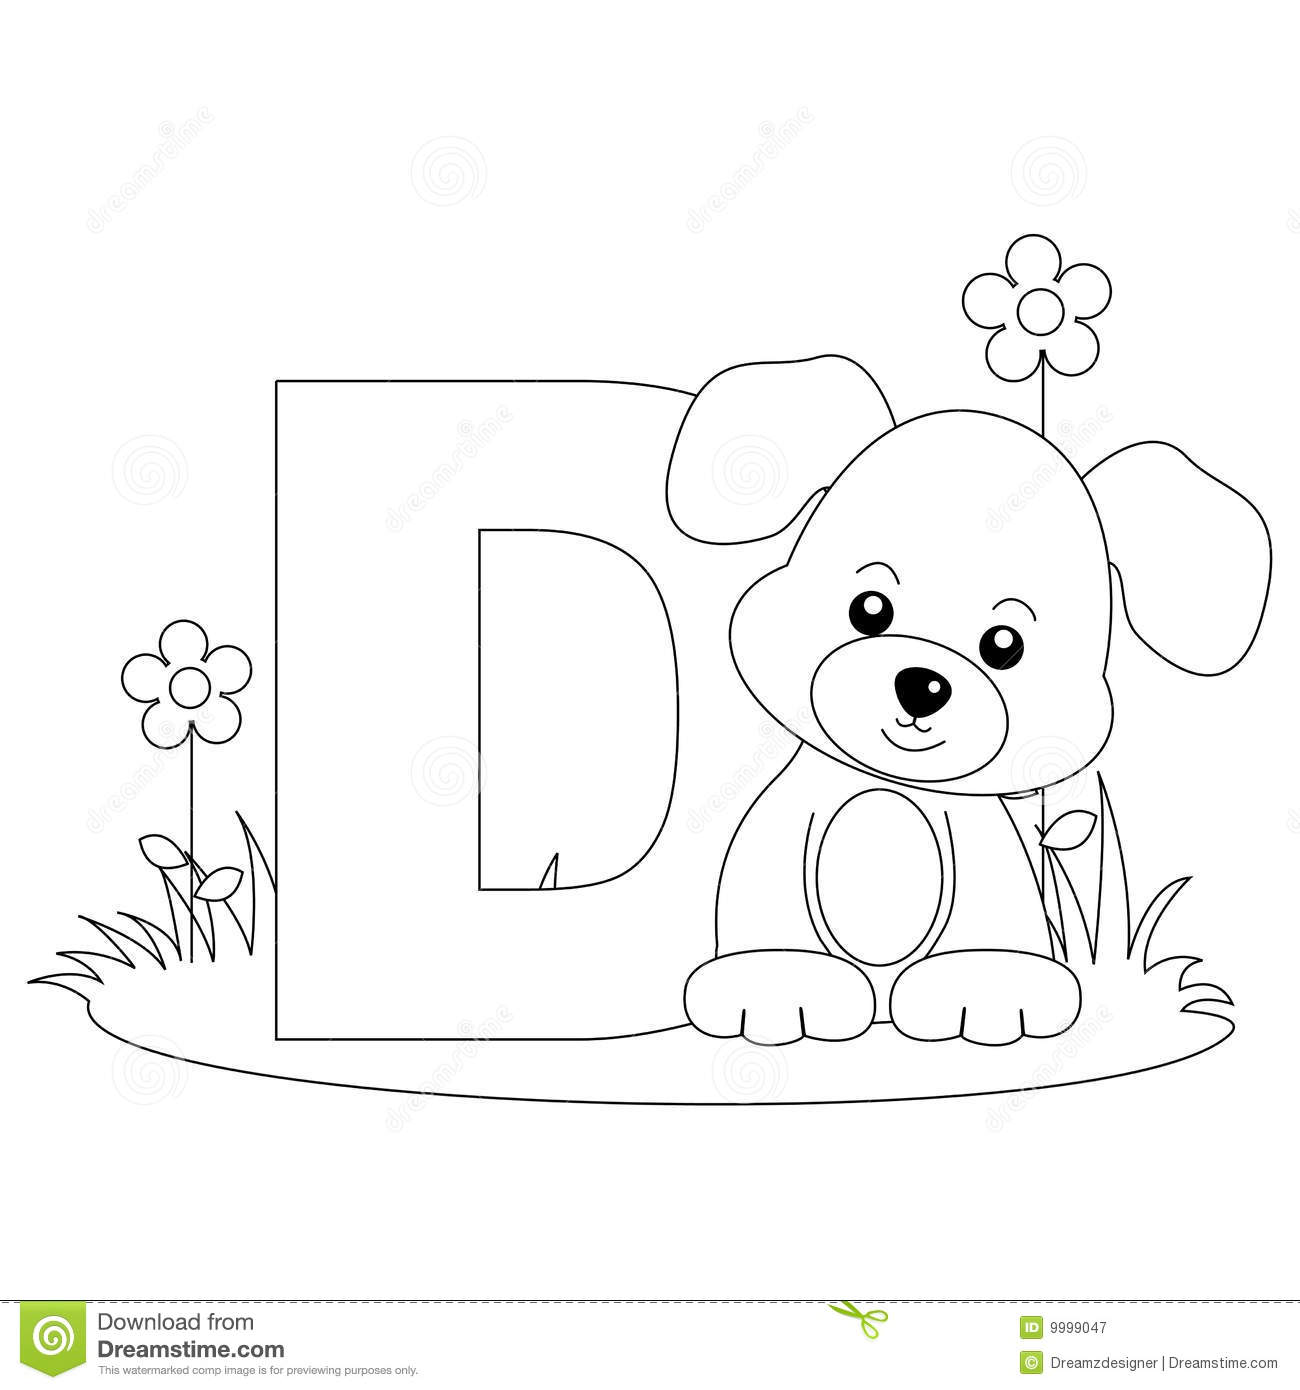 animal alphabet d coloring page royalty free stock photography